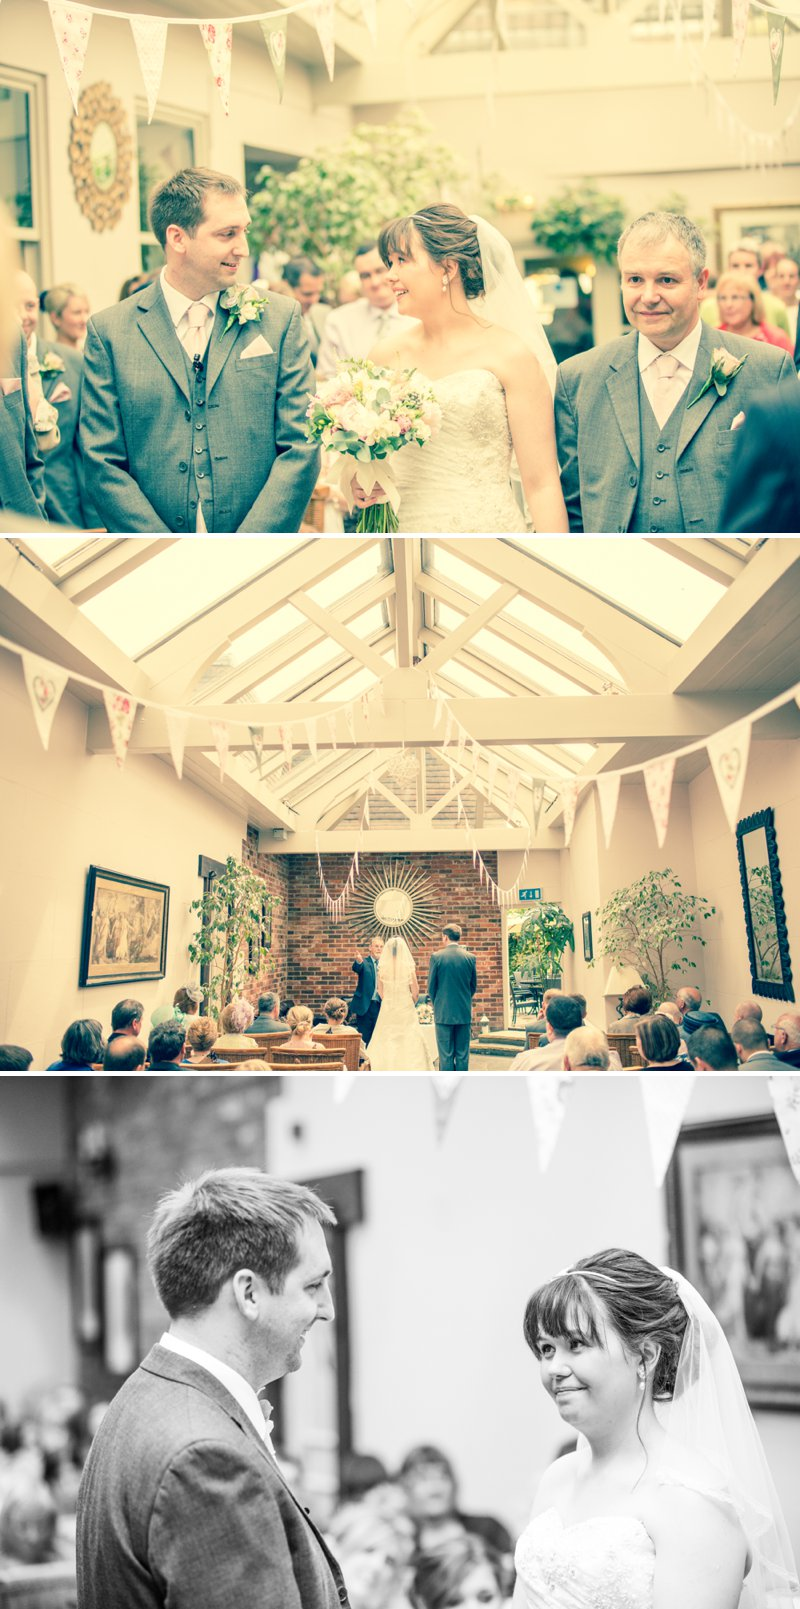 Elegant Wedding At Stanwell House Hotel In Hampshire With Bride In Phil Collins Bridal Gown And Groom In Moss Suit With A Blush Pink Colour Scheme And Comic Book Hero Details Images From Beki Young Wedding Photography 9